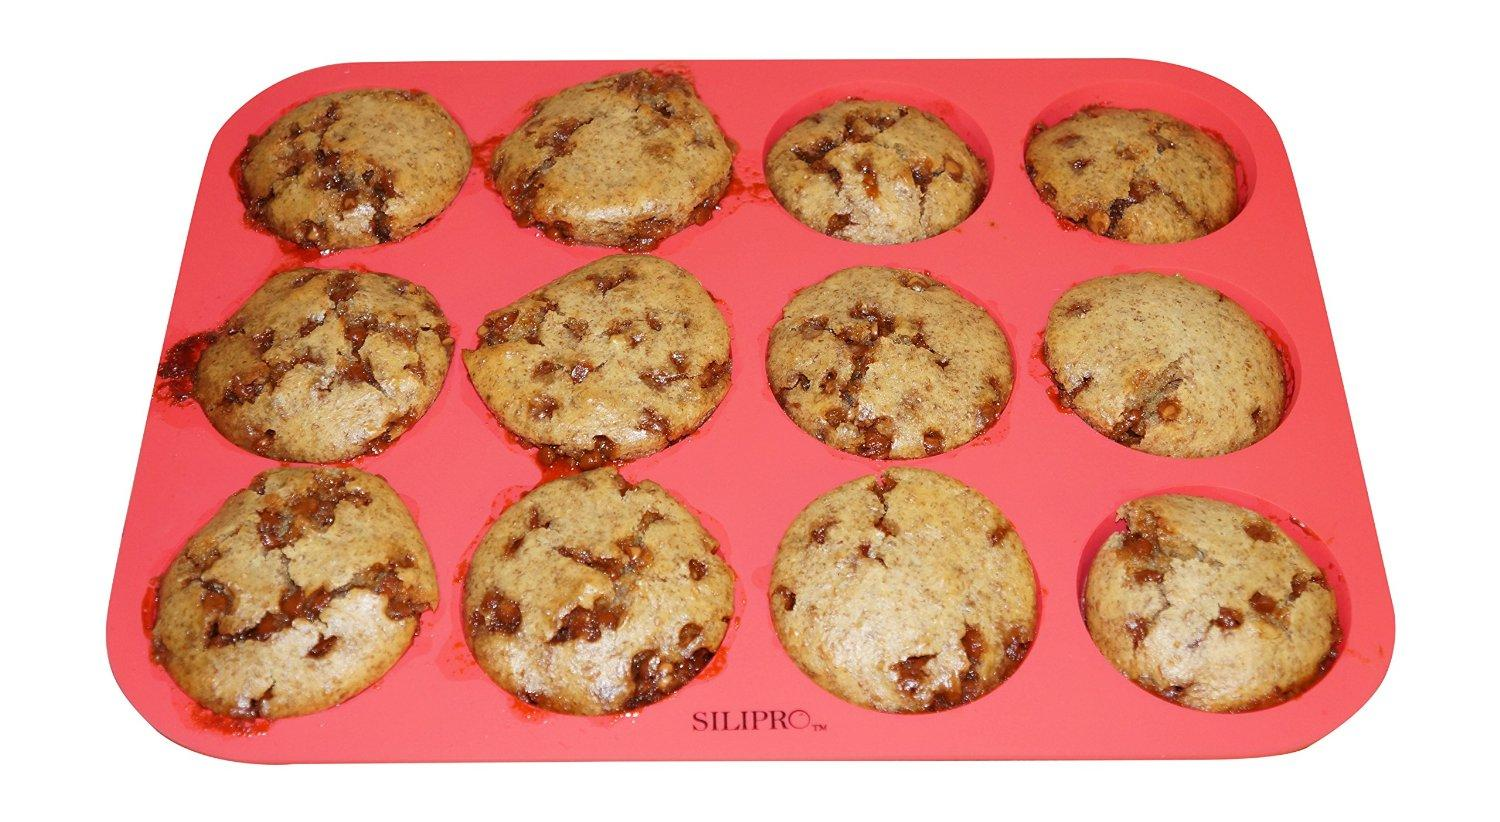 SiliPro Silicone Muffin Pan, 12 Cups